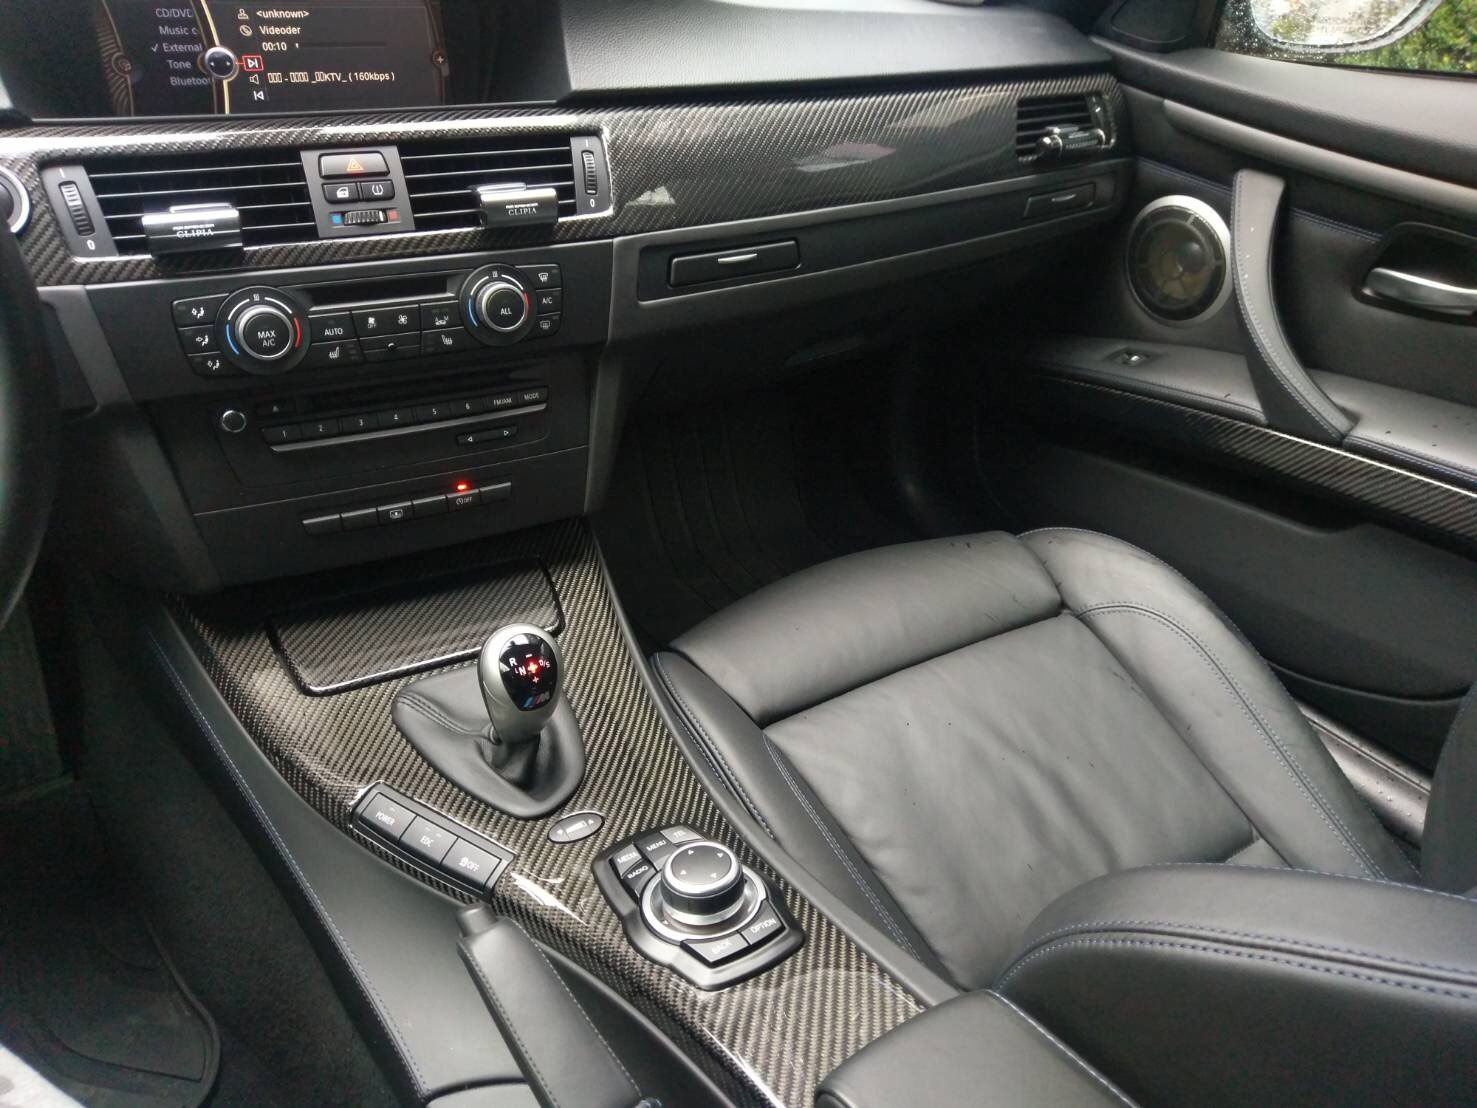 Carbon Fiber Interior Trim Kit On A Bmw E92 M3 S Izobrazheniyami